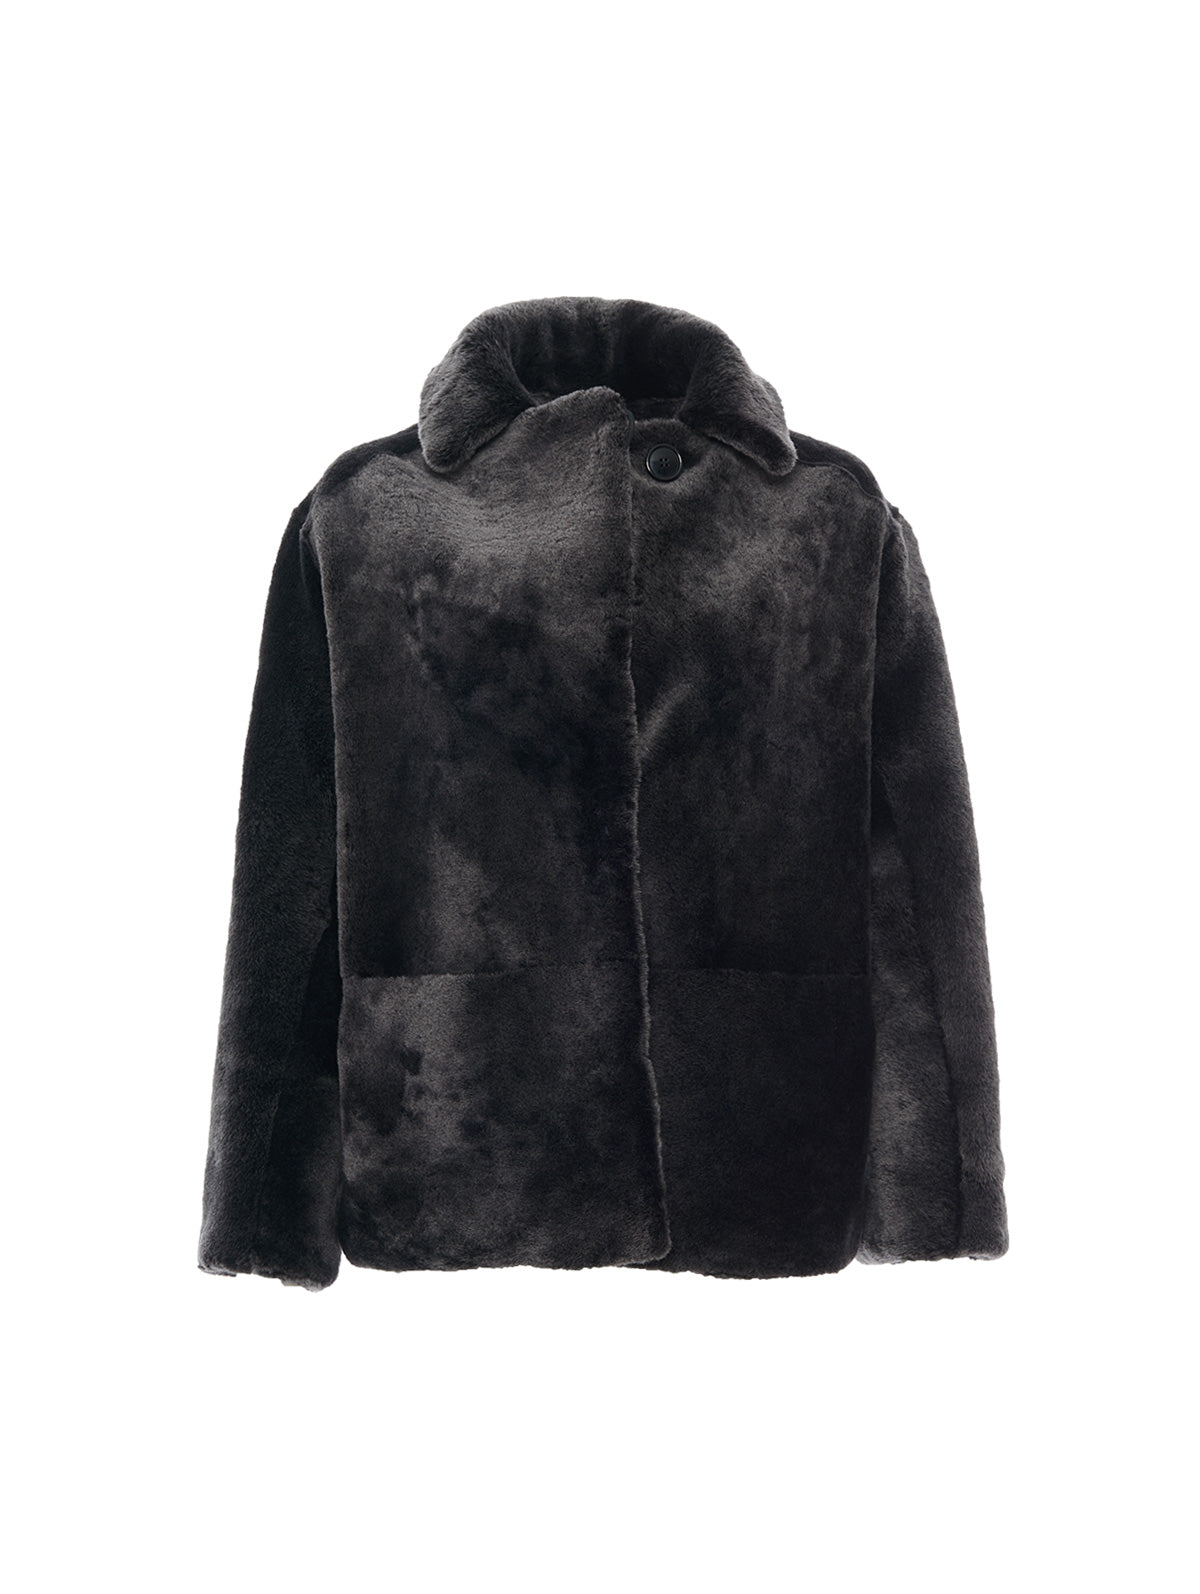 COLLARED SHEARLING JACKET, CHARCOAL<br> PRE-ORDER